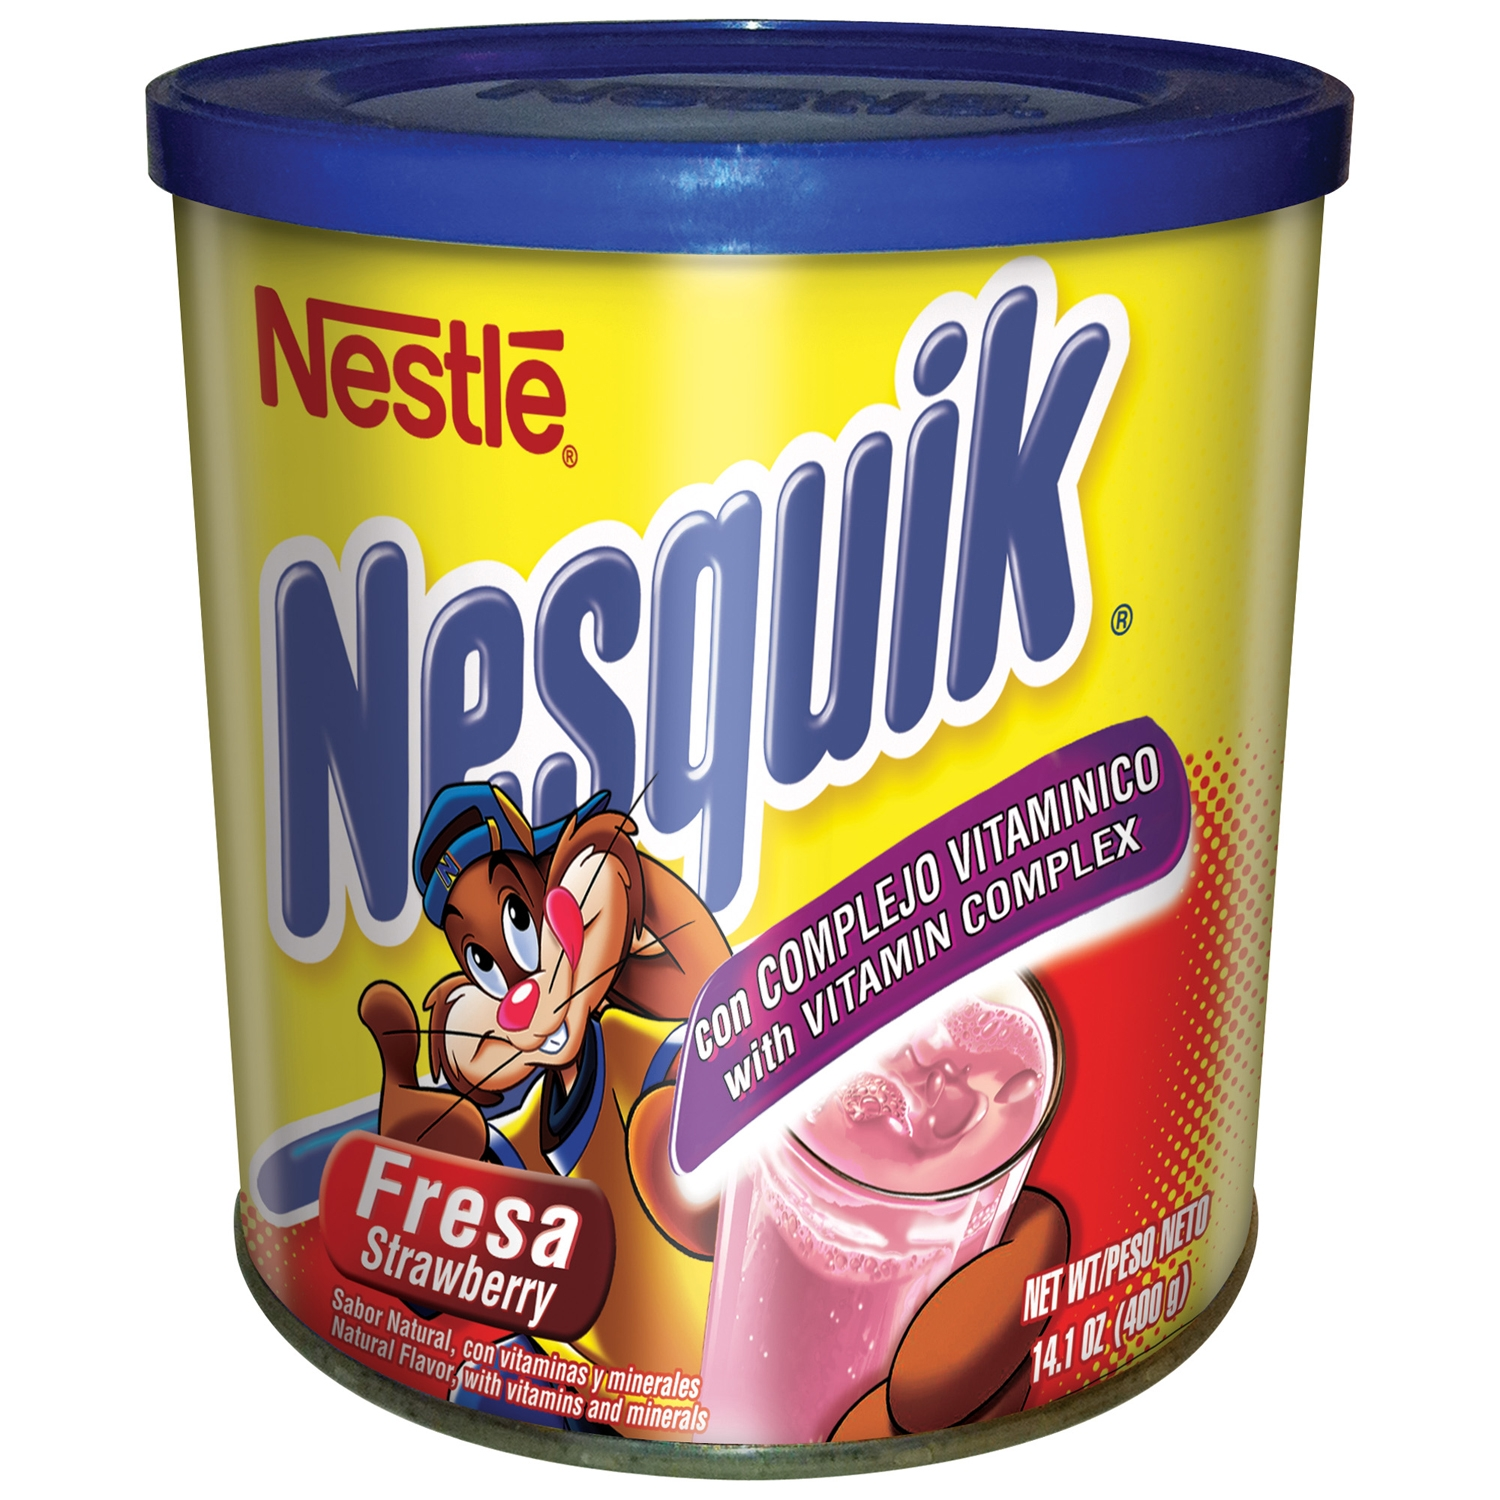 Nestle Drink Mix, Strawberry, 14.1 Oz, 1 Count